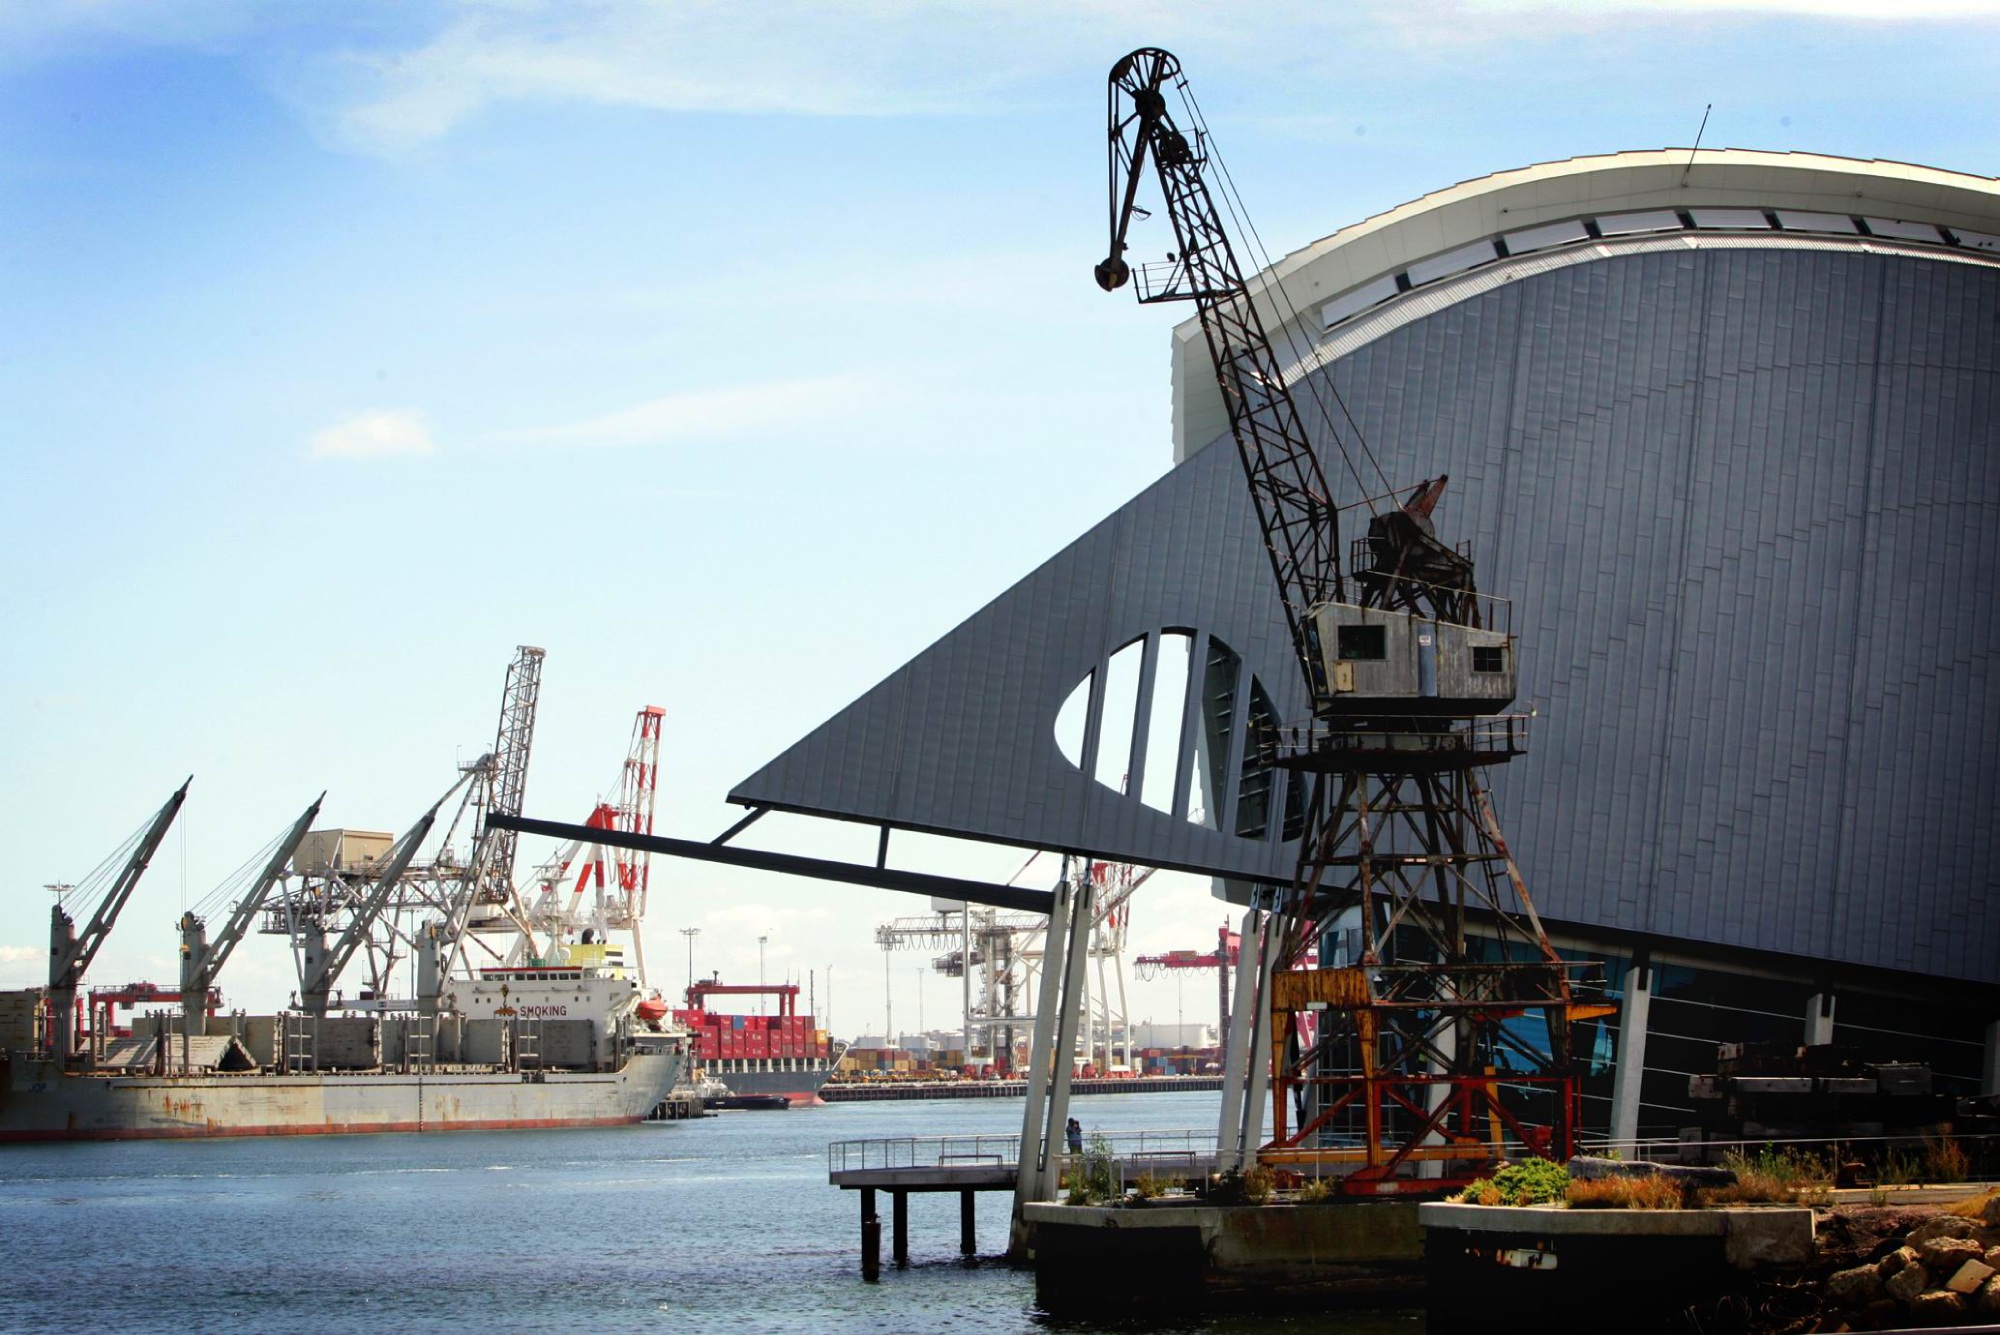 A bill for the lease of Fremantle Port has gone before parliament.